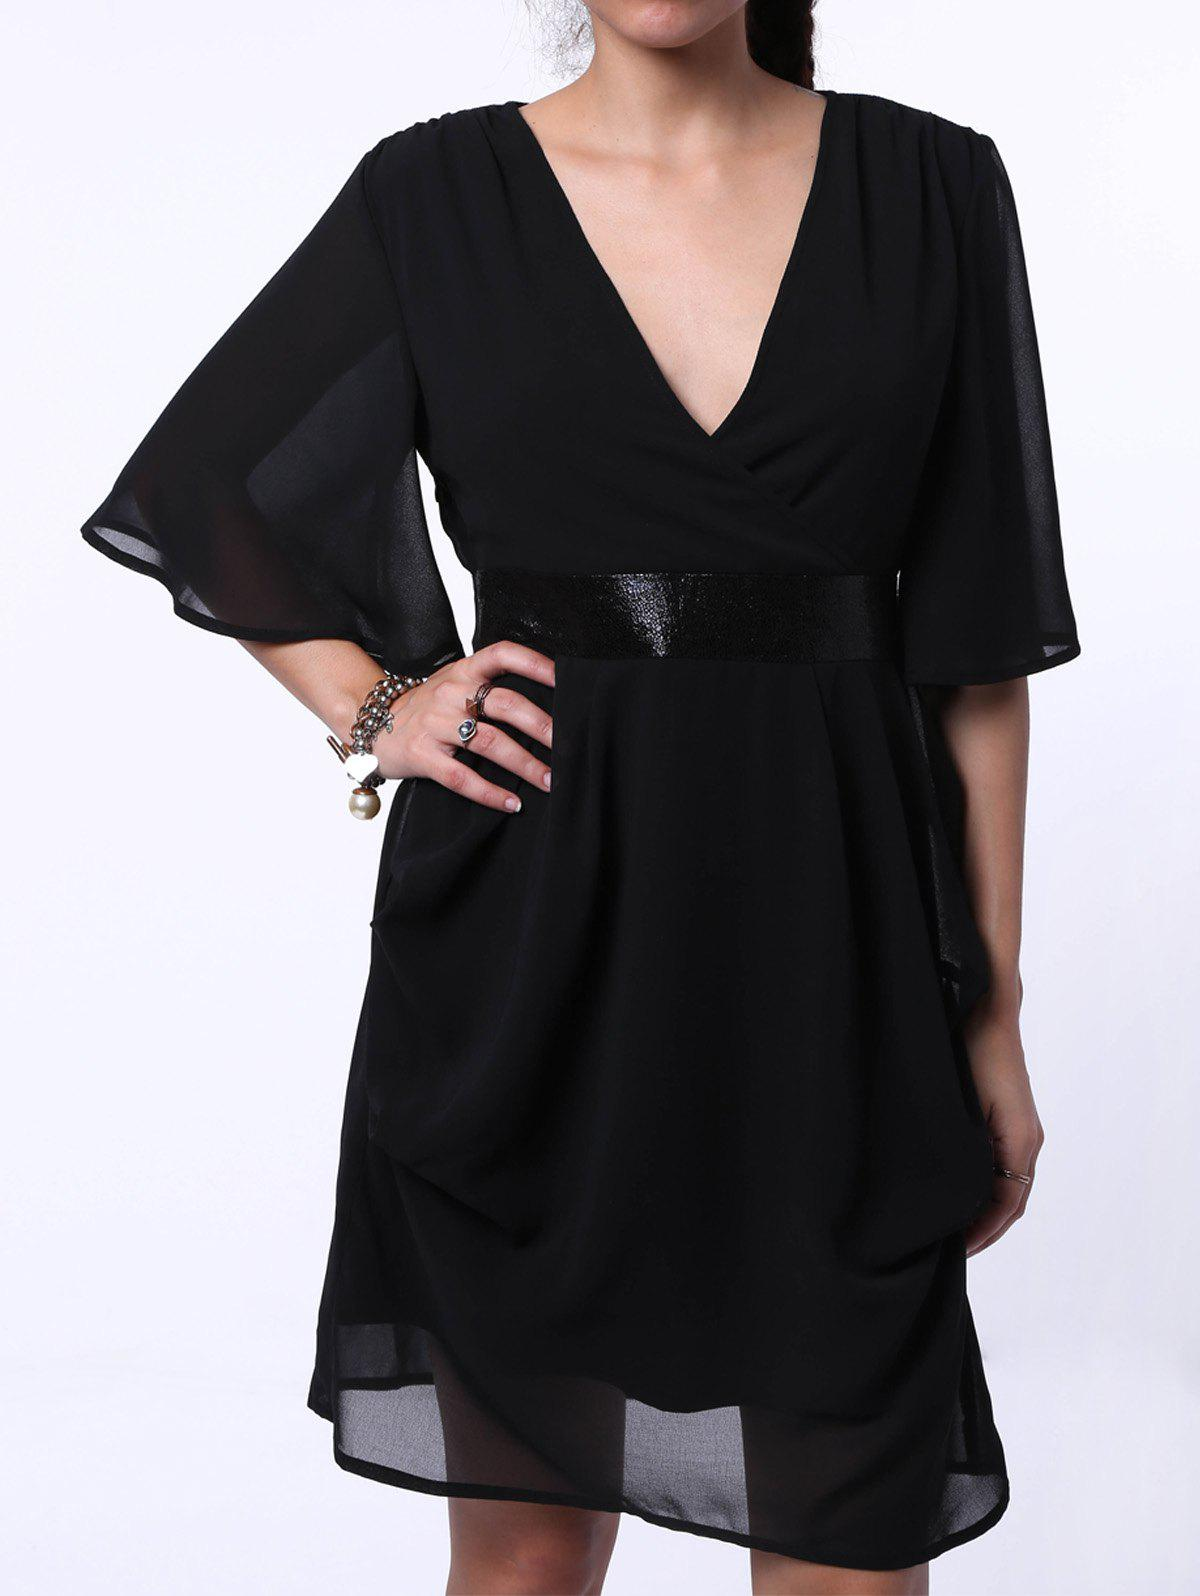 Trendy Plunging Neck Bell Neck Chiffon Sequined Dress For Women - BLACK XL